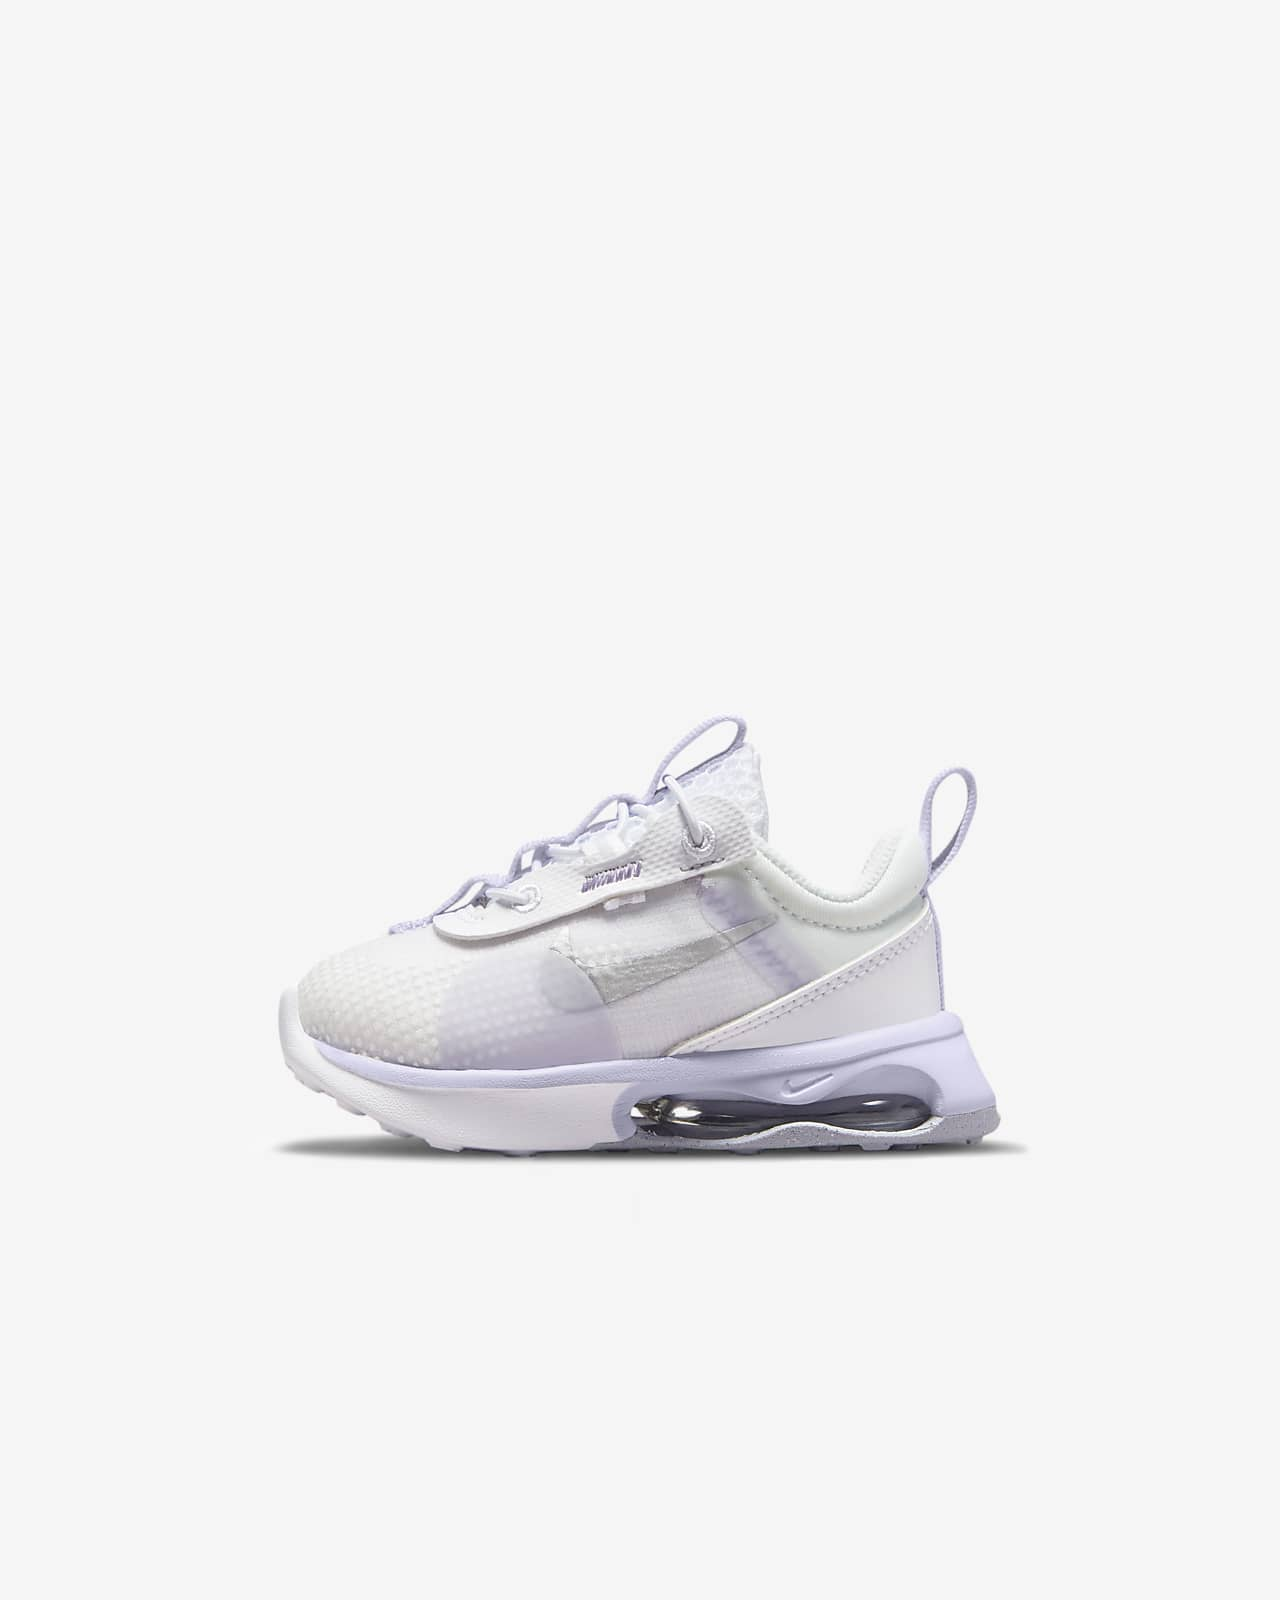 Nike Air Max 2021 Baby/Toddler Shoes